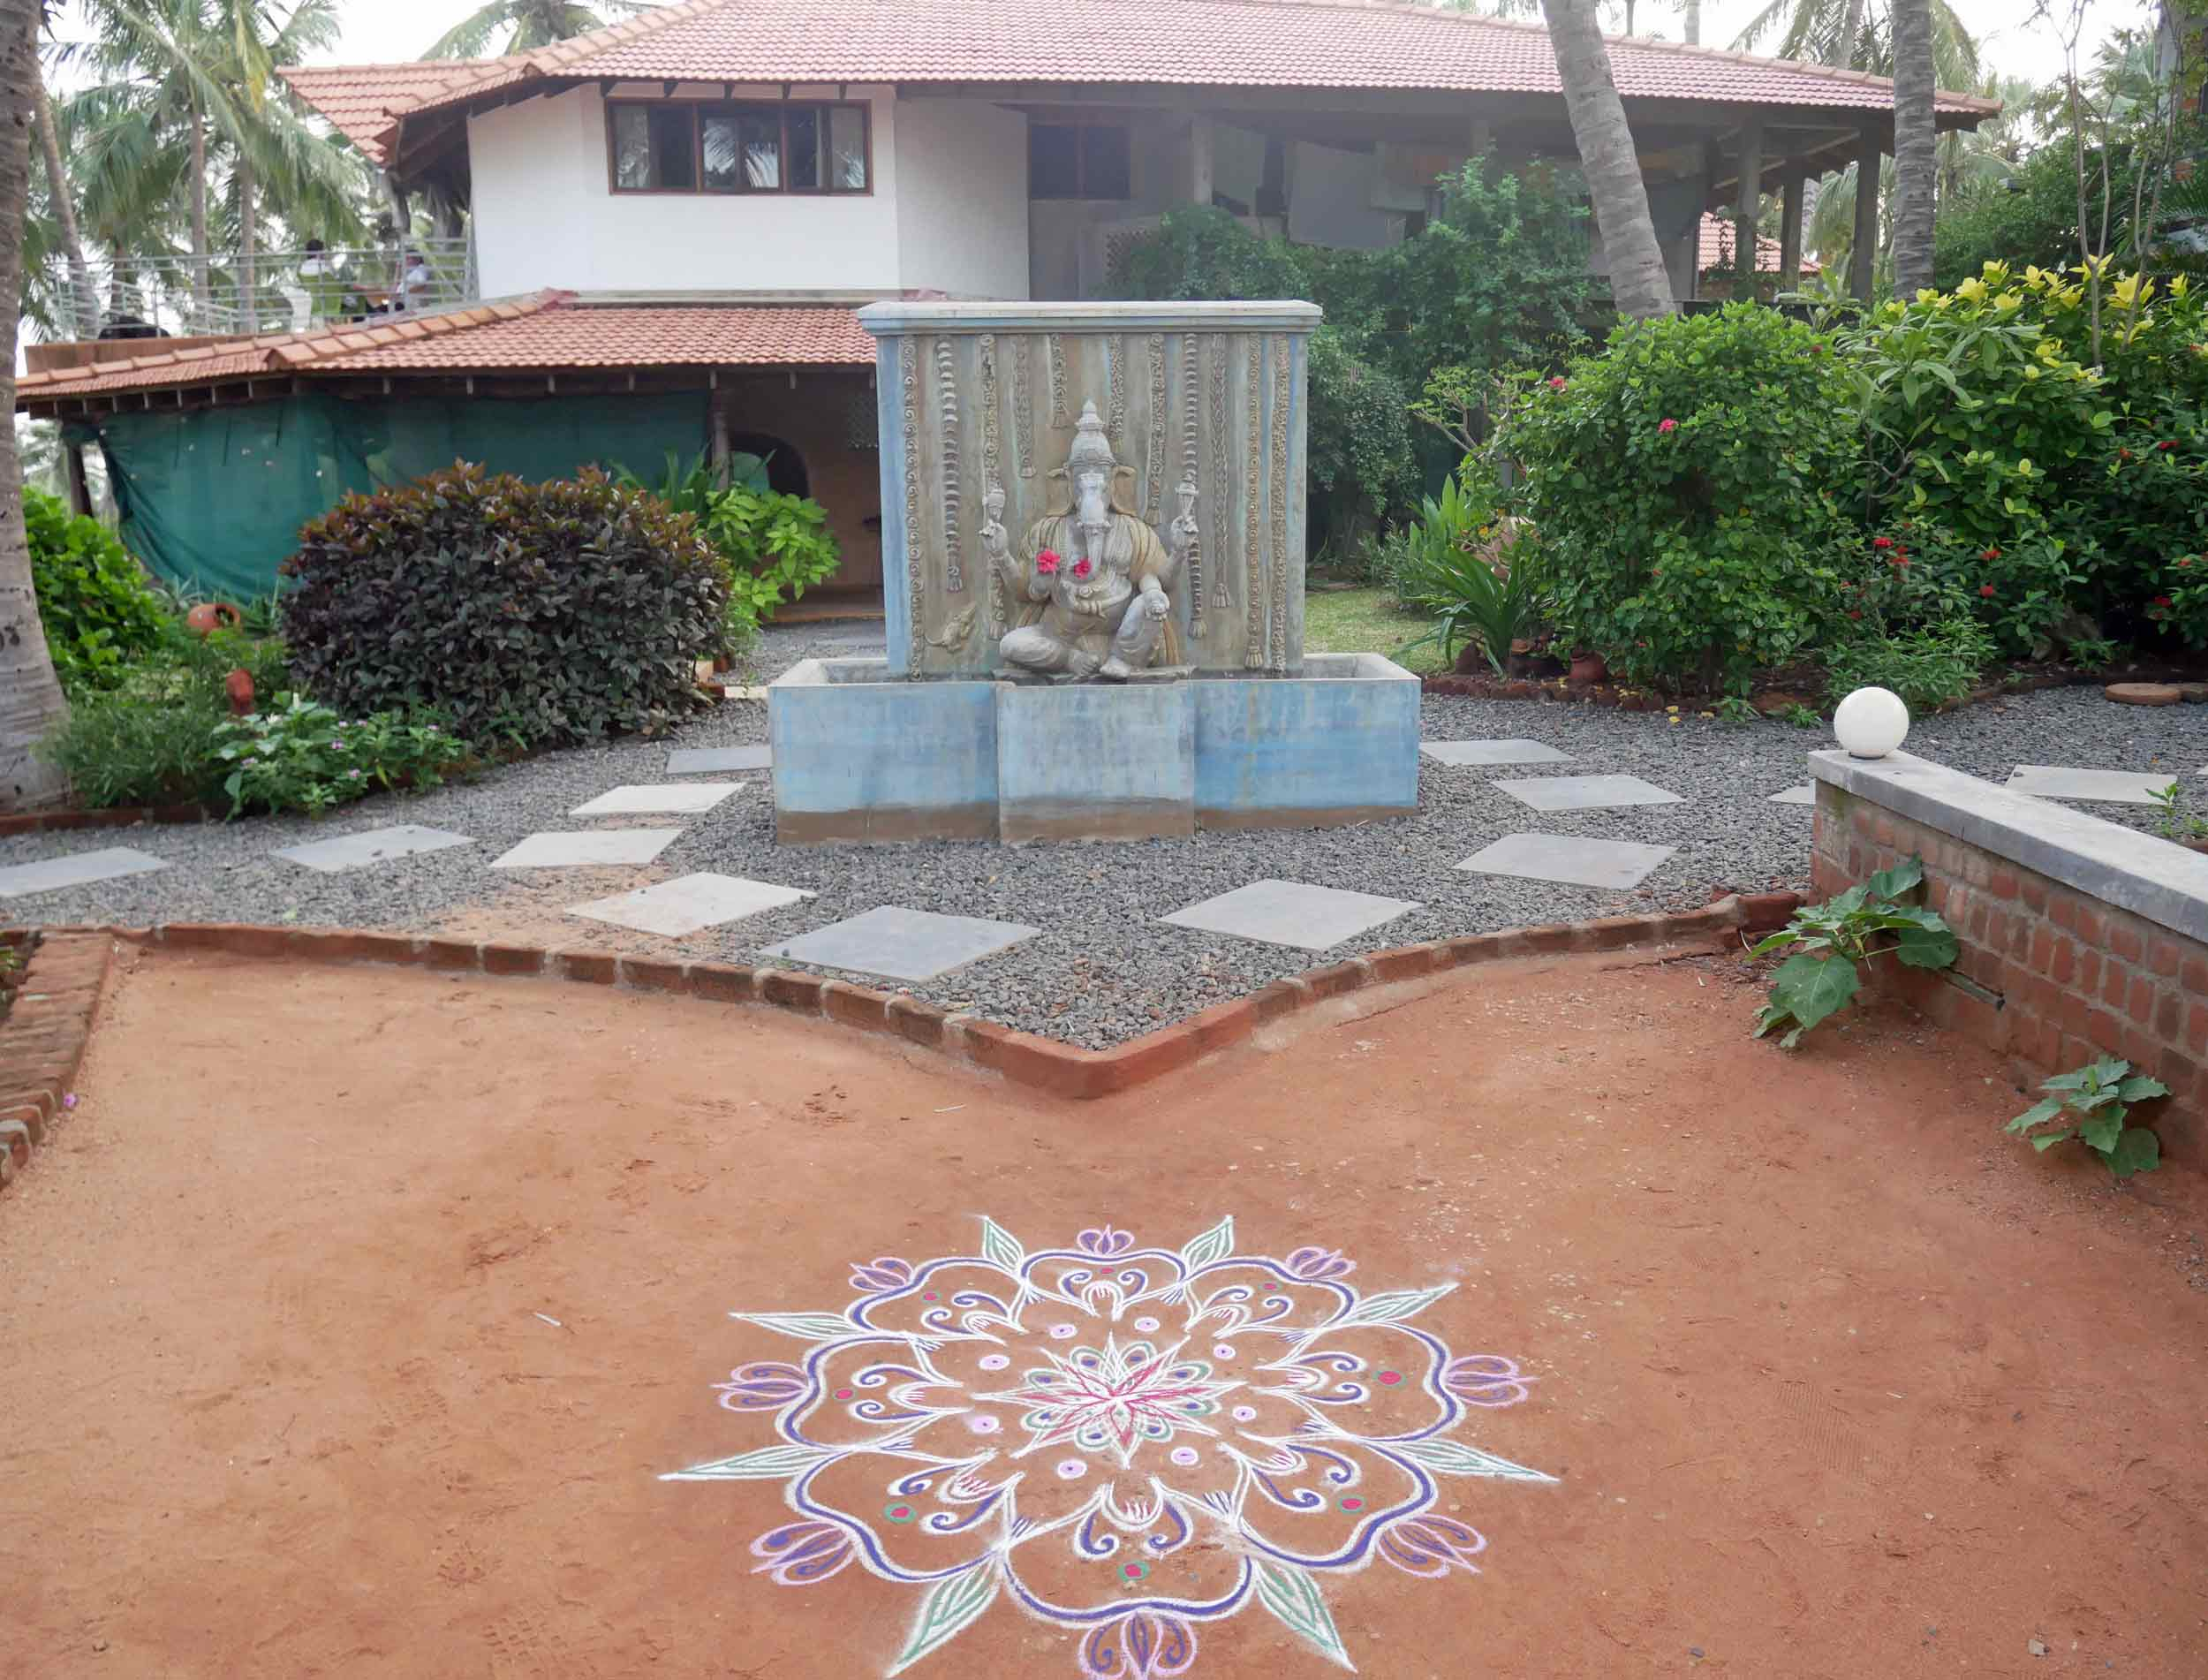 The delightful Samarpan Guesthouse and a beautiful mandala that welcomed us at the entrance.